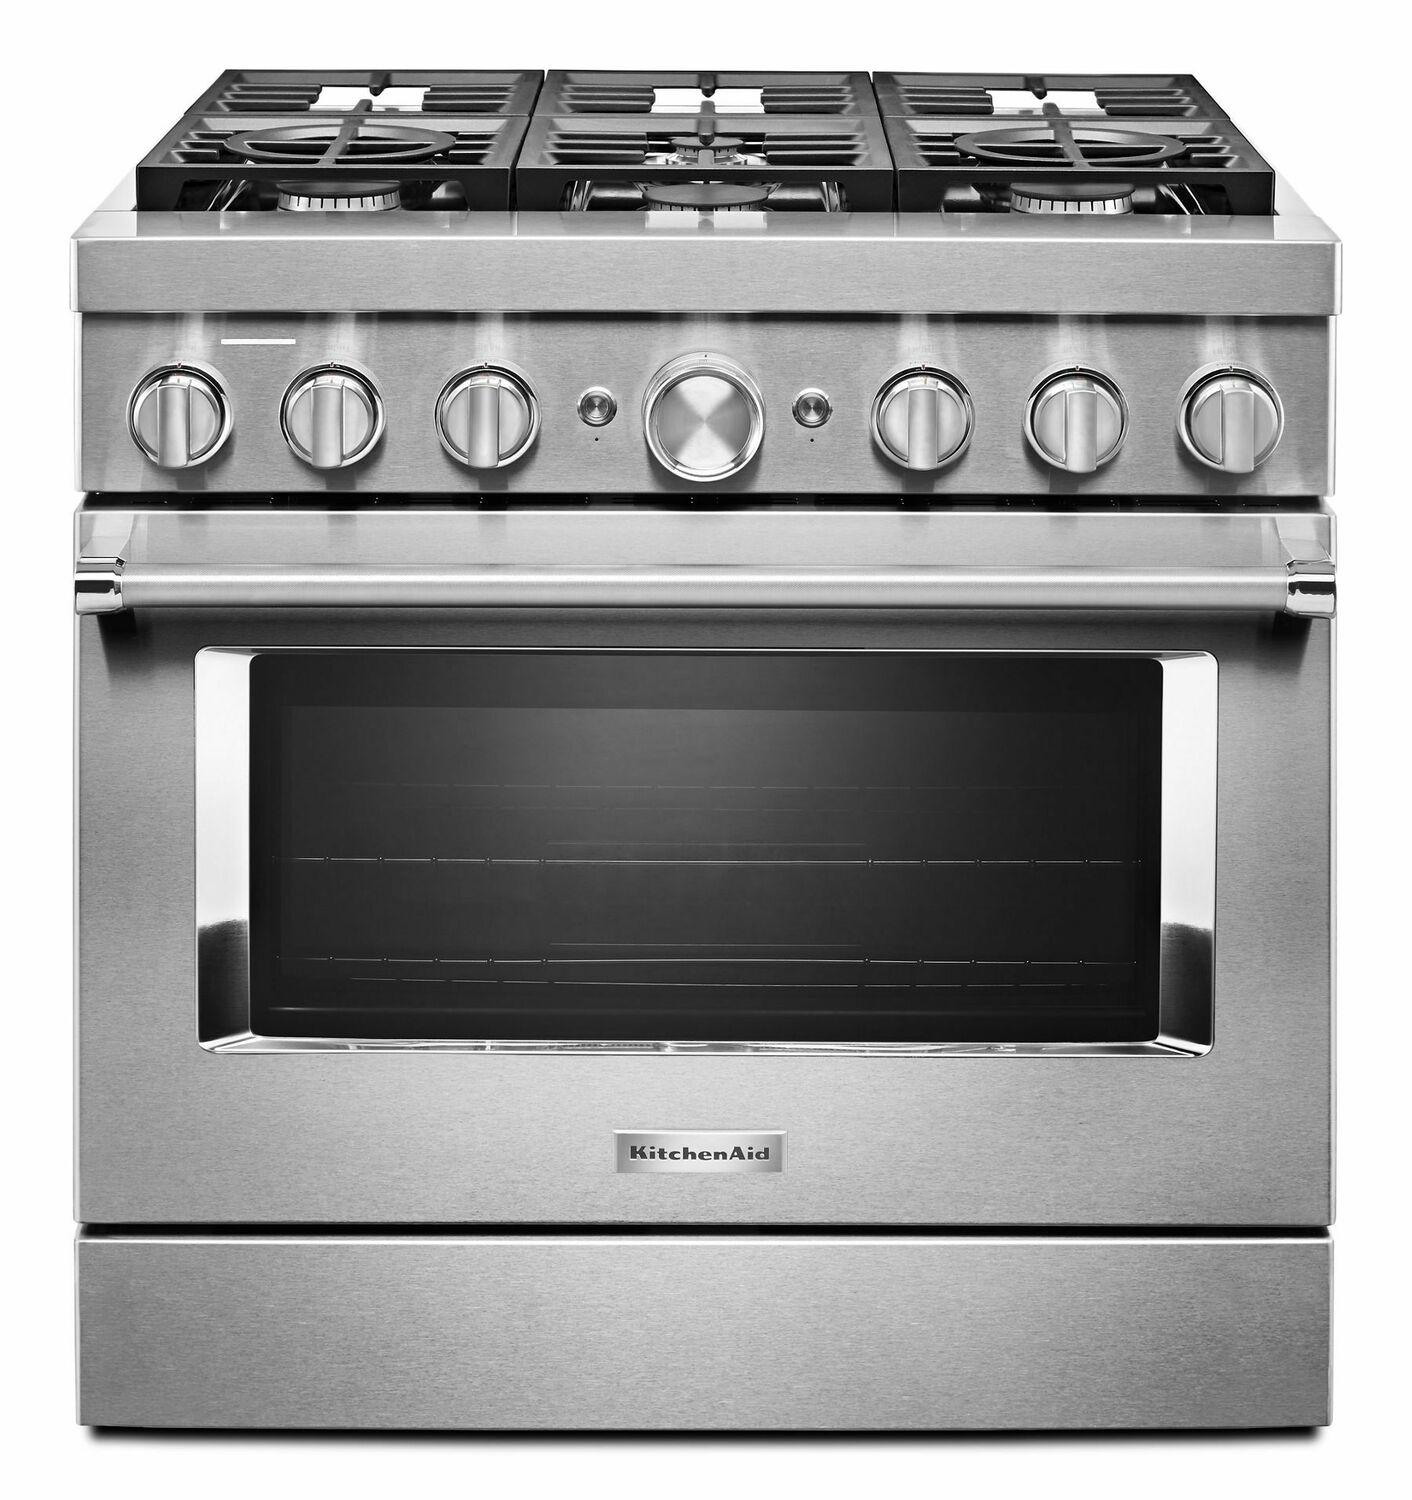 KitchenaidKitchenaid® 36'' Smart Commercial-Style Dual Fuel Range With 6 Burners - Stainless Steel